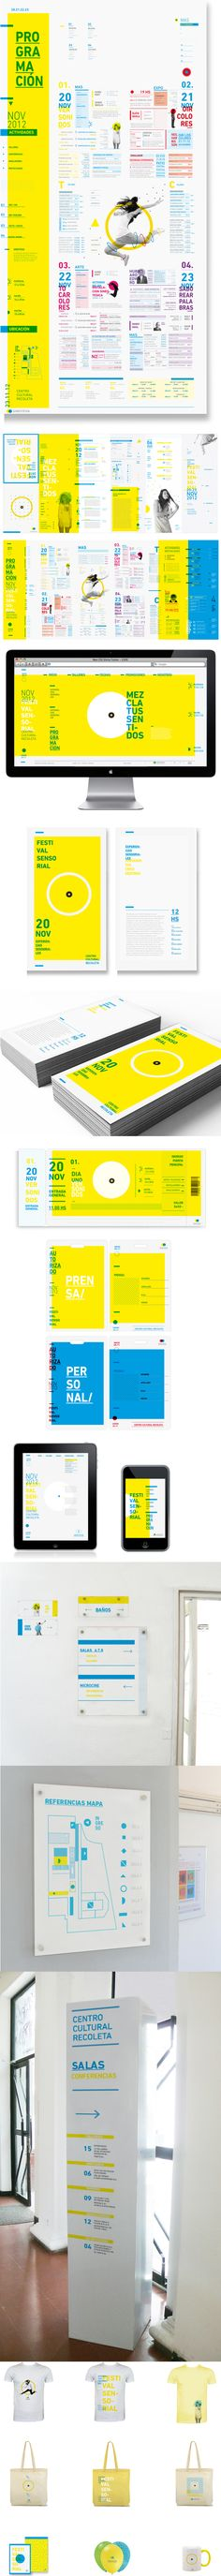 Sinestesia Festival Identity by Martina. Lovely, bright, and full of typographic fun.